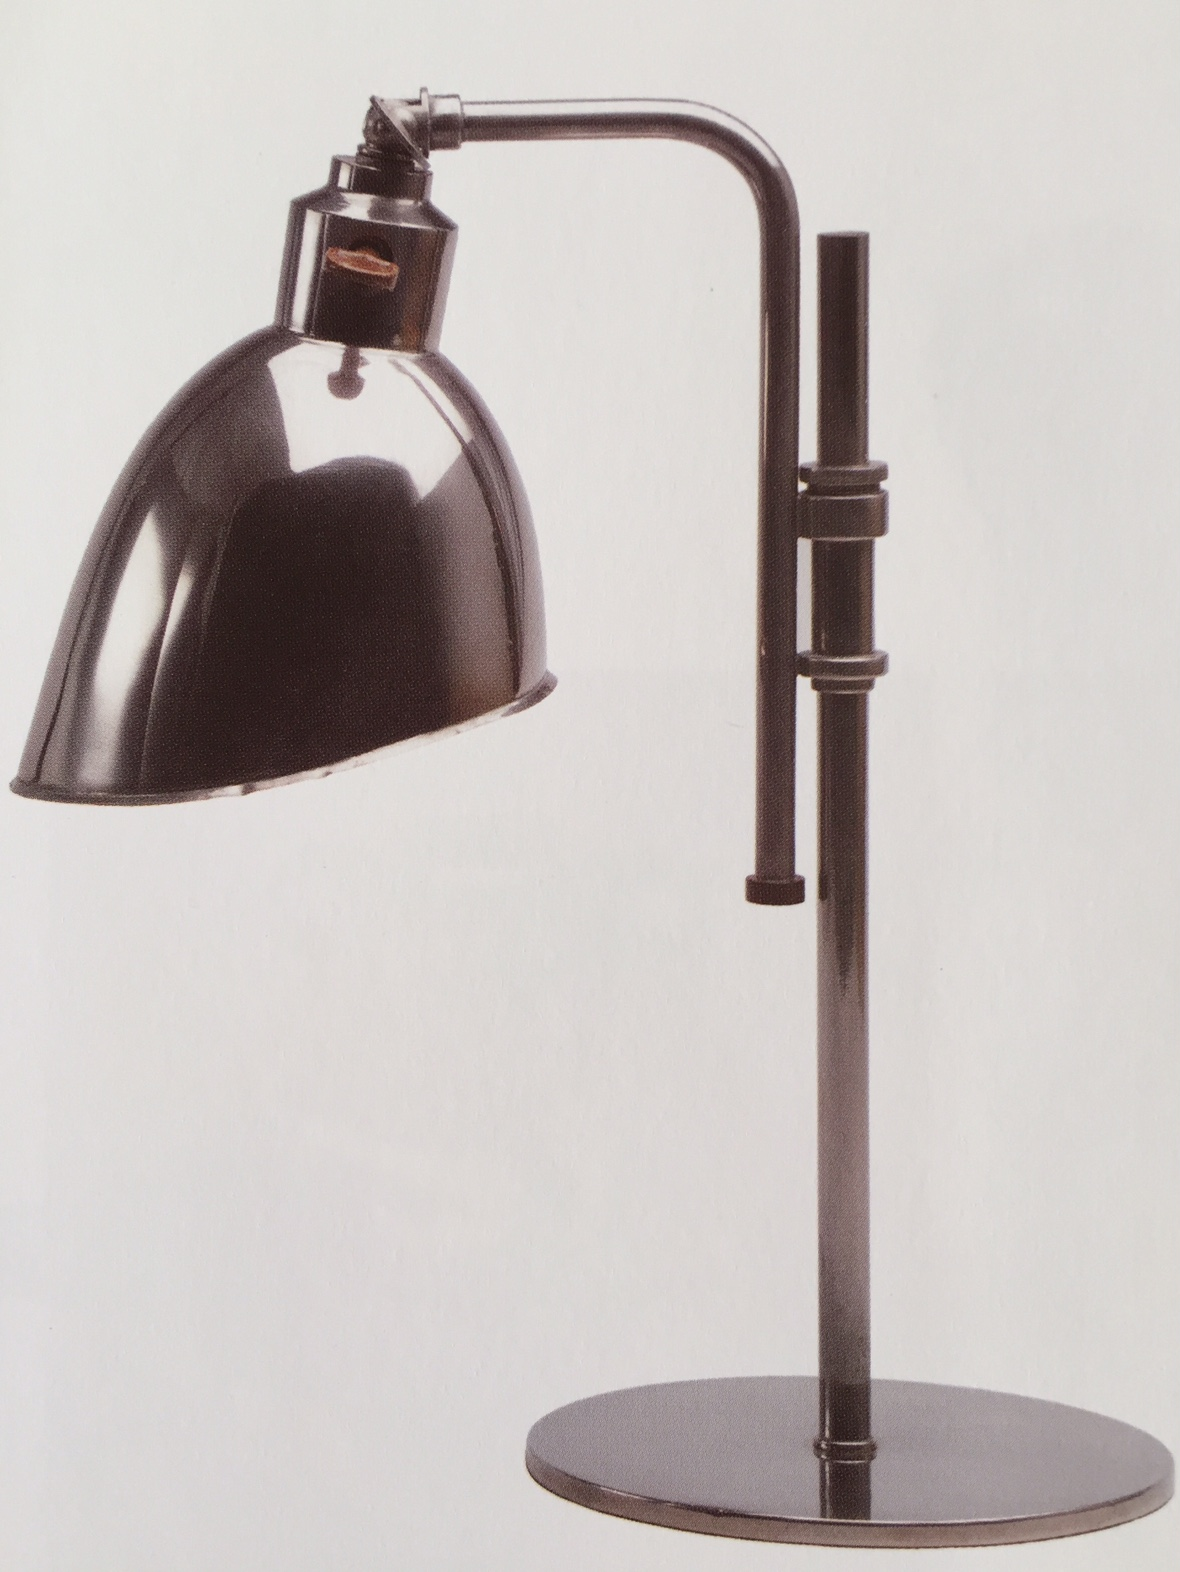 Christian Dell, table lamp, 1926